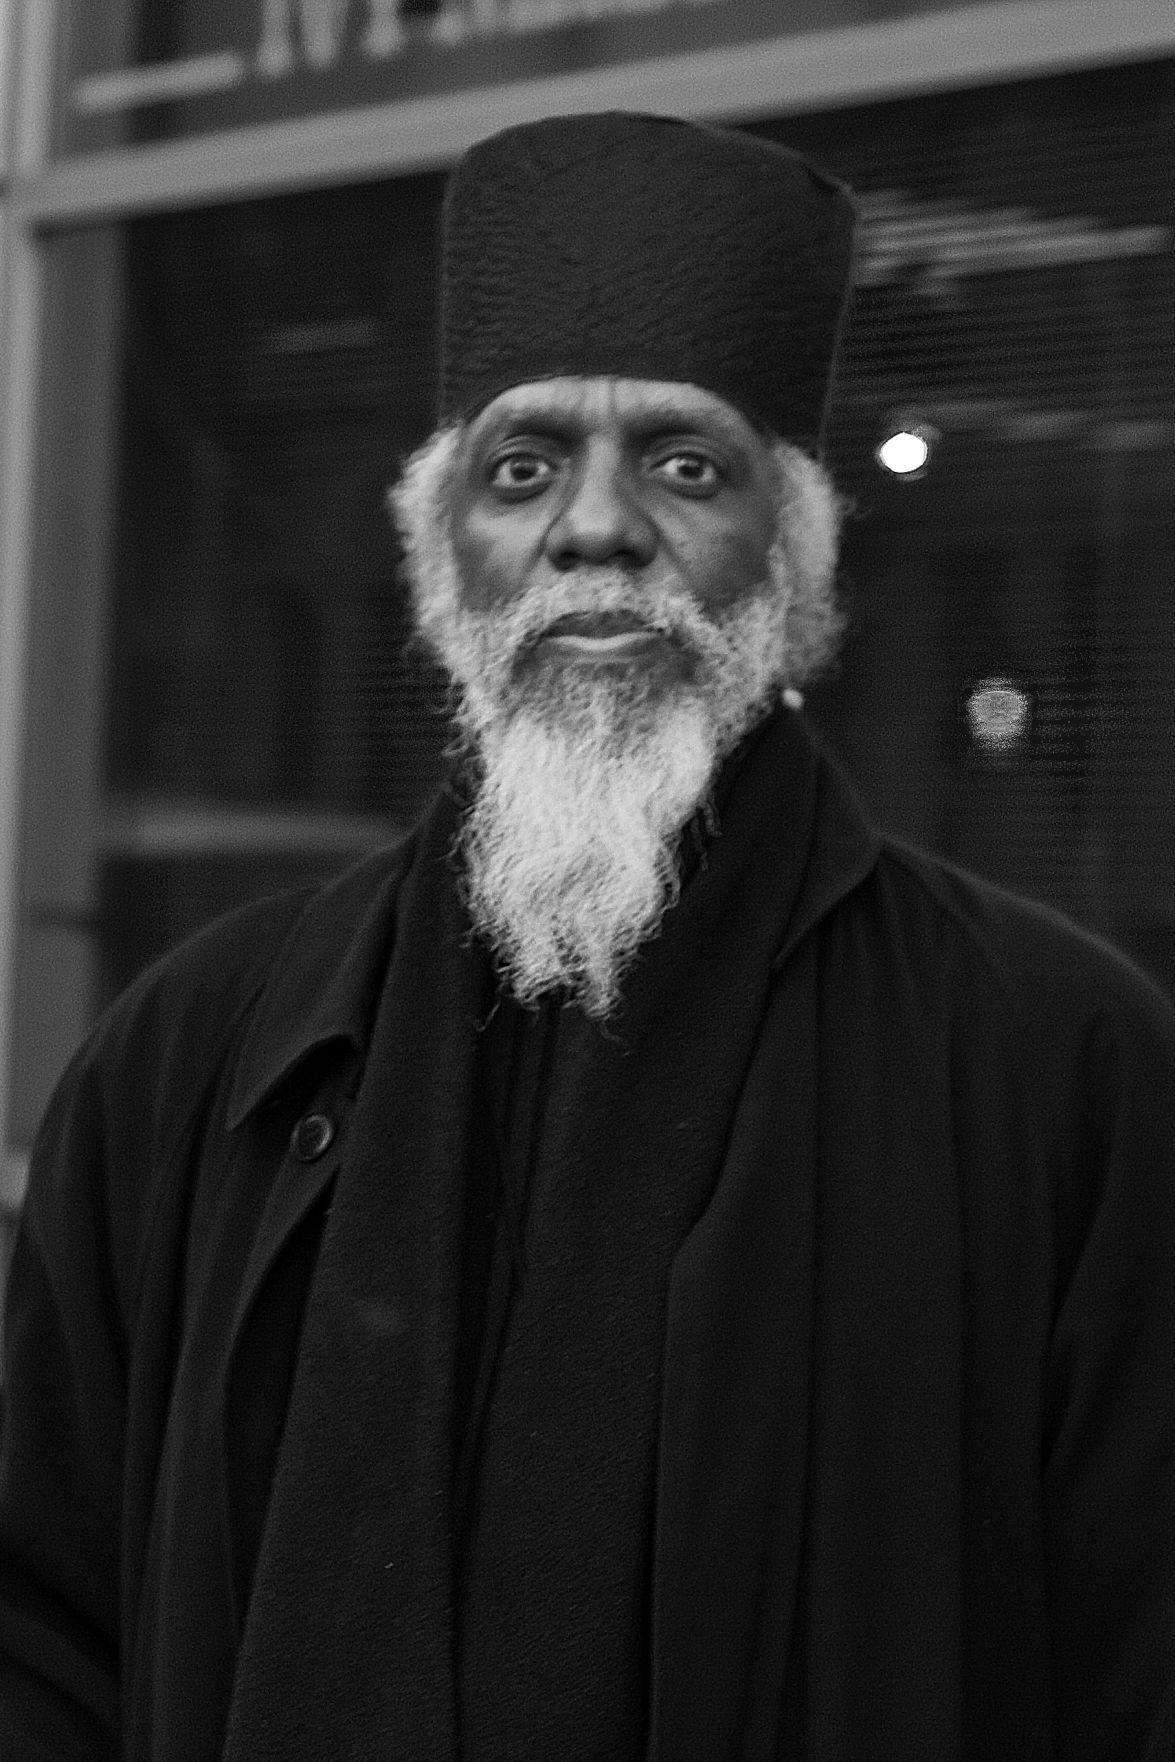 We Always Swing - Lonnie Smith